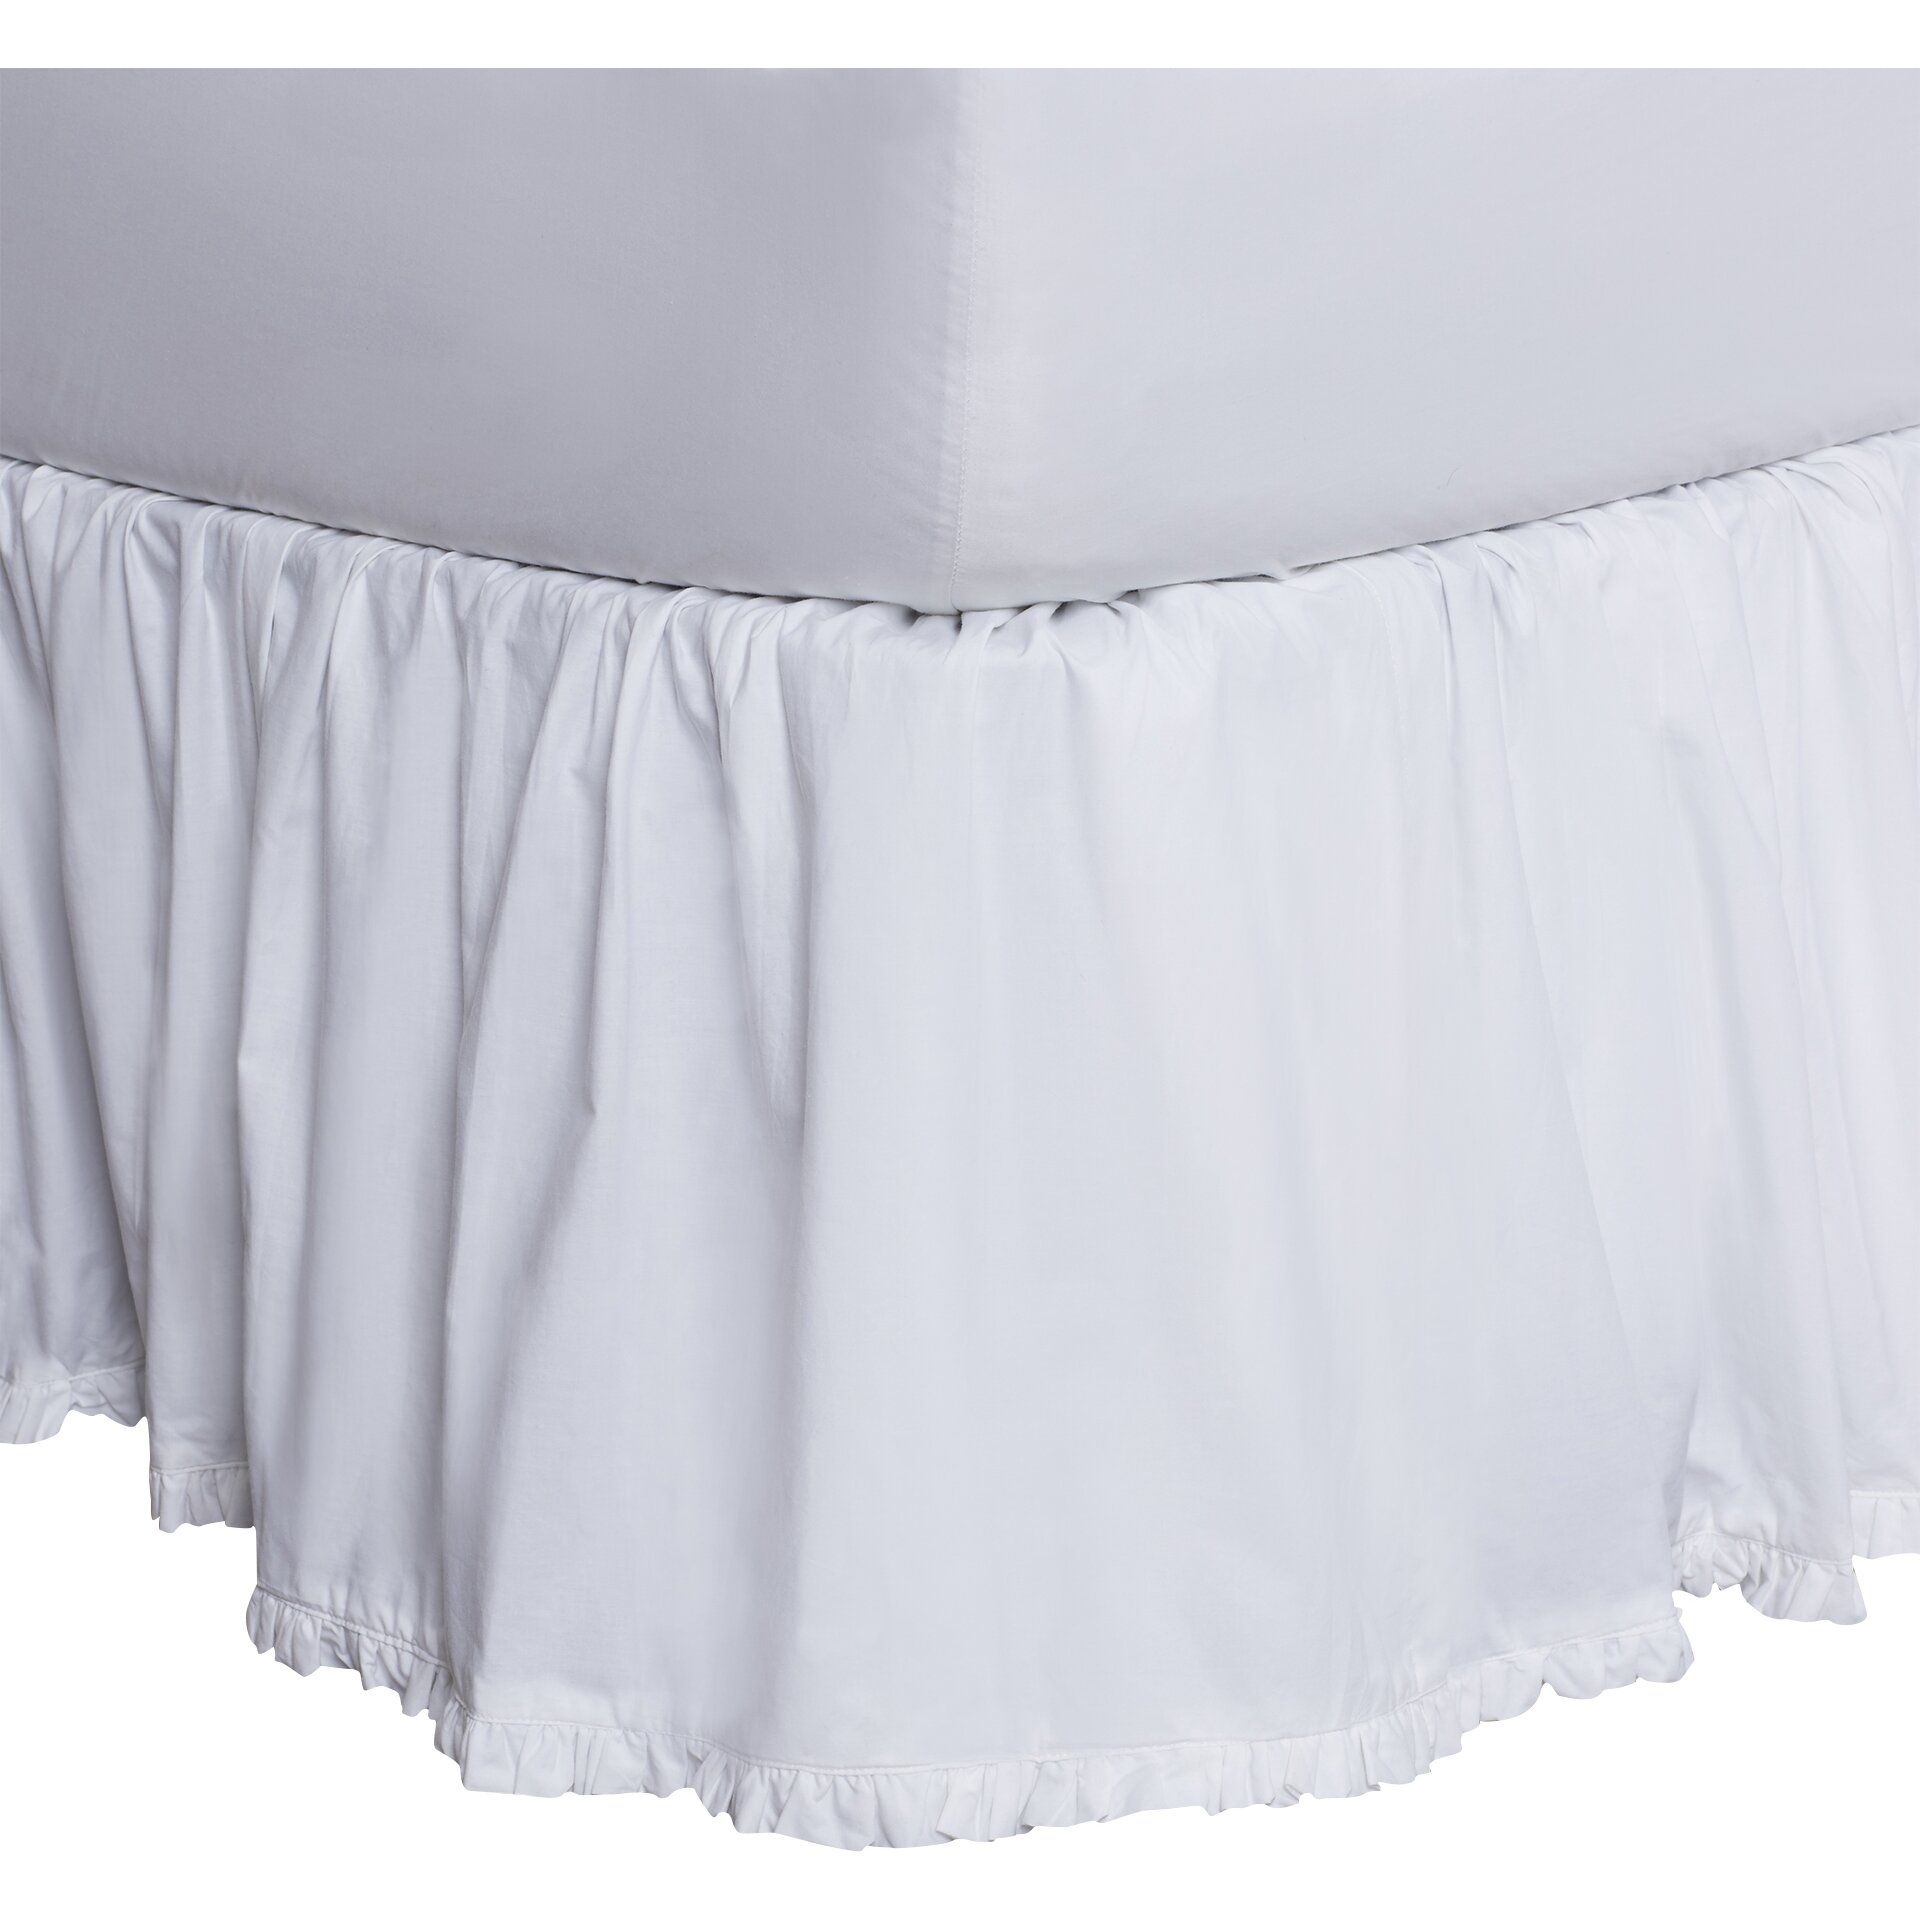 Cotton Bed Skirt 105